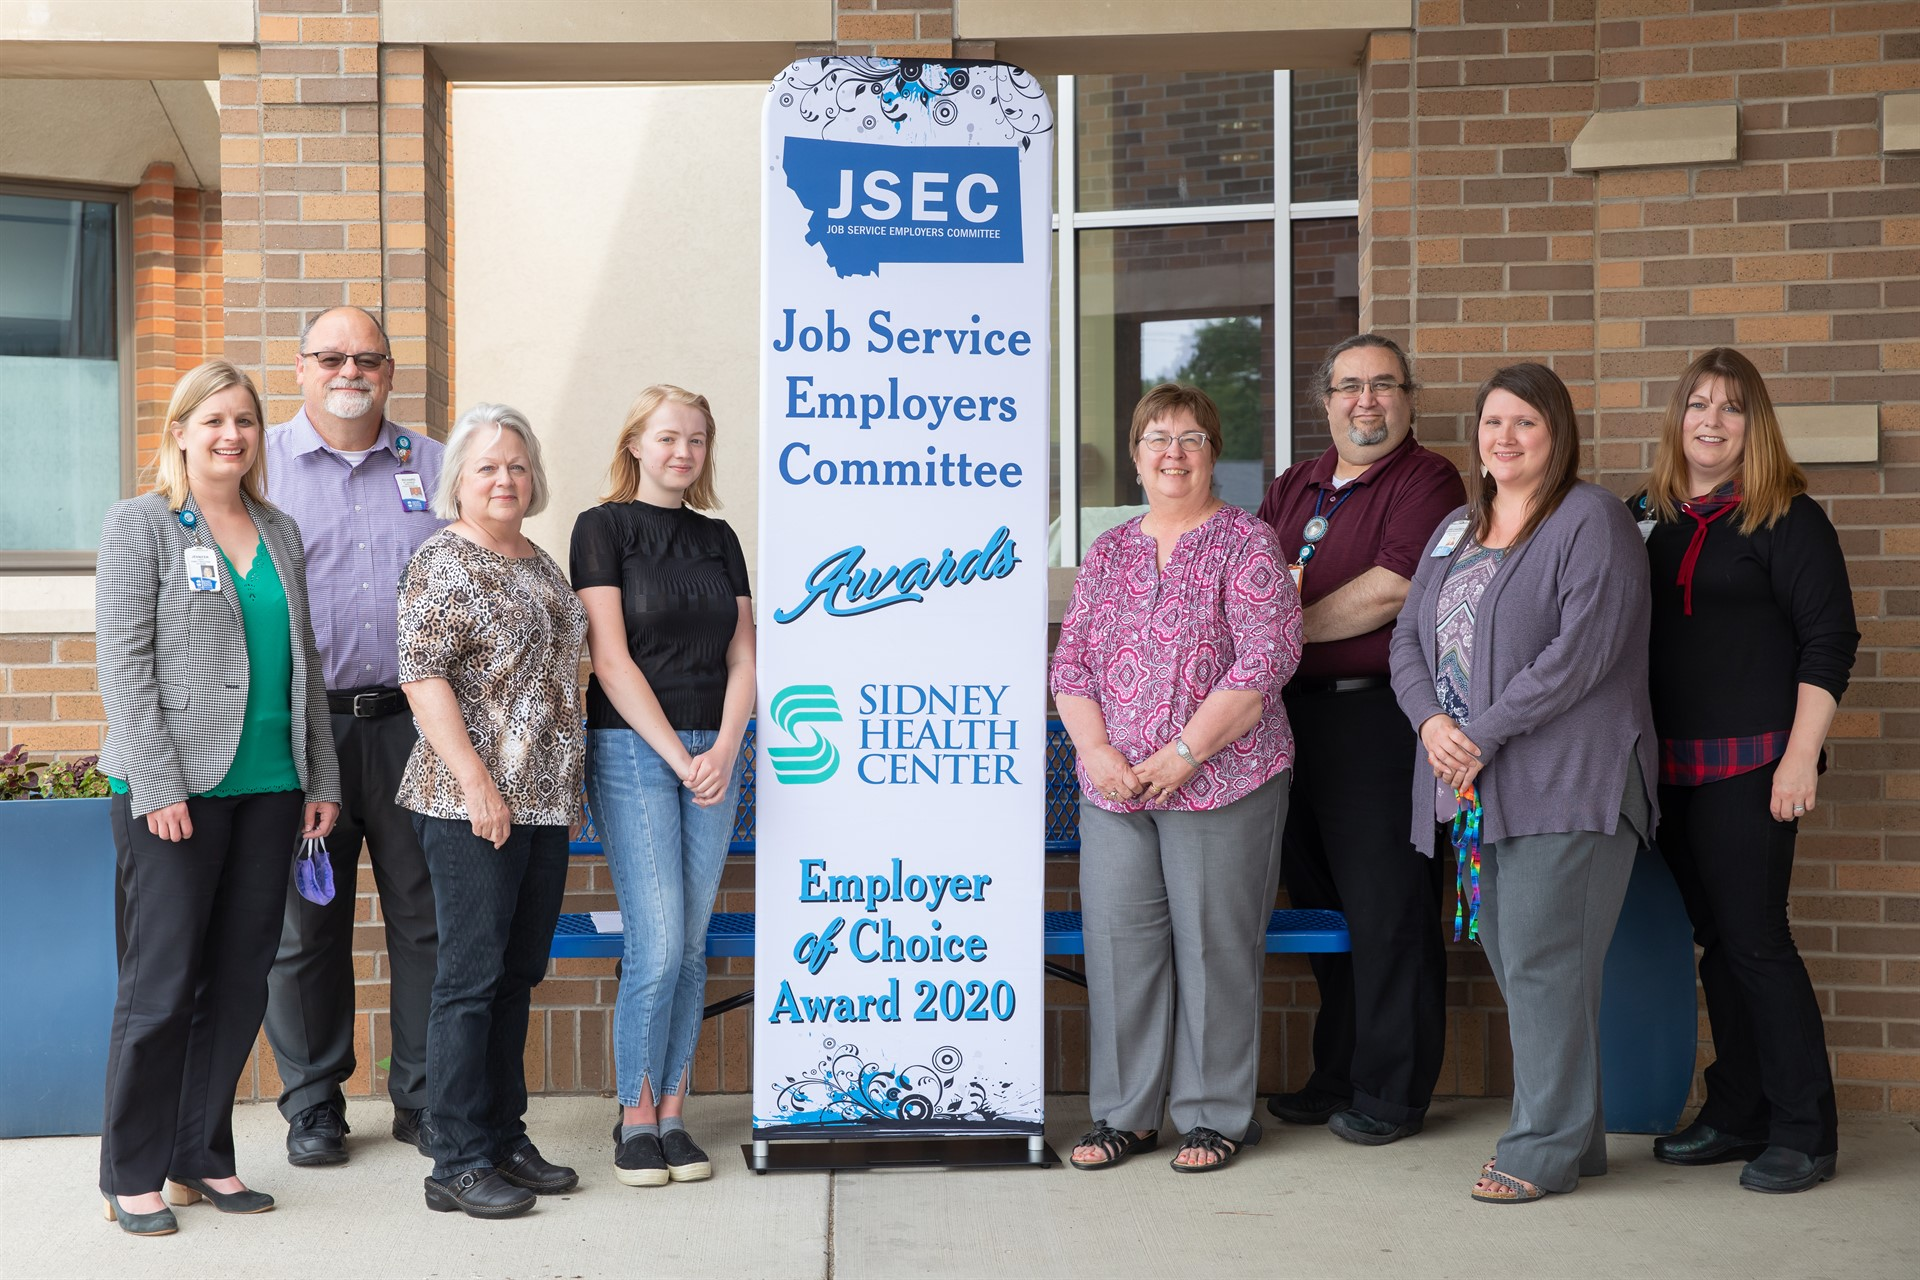 Sidney Health Center Awarded JSEC 2020 Employer of Choice Award